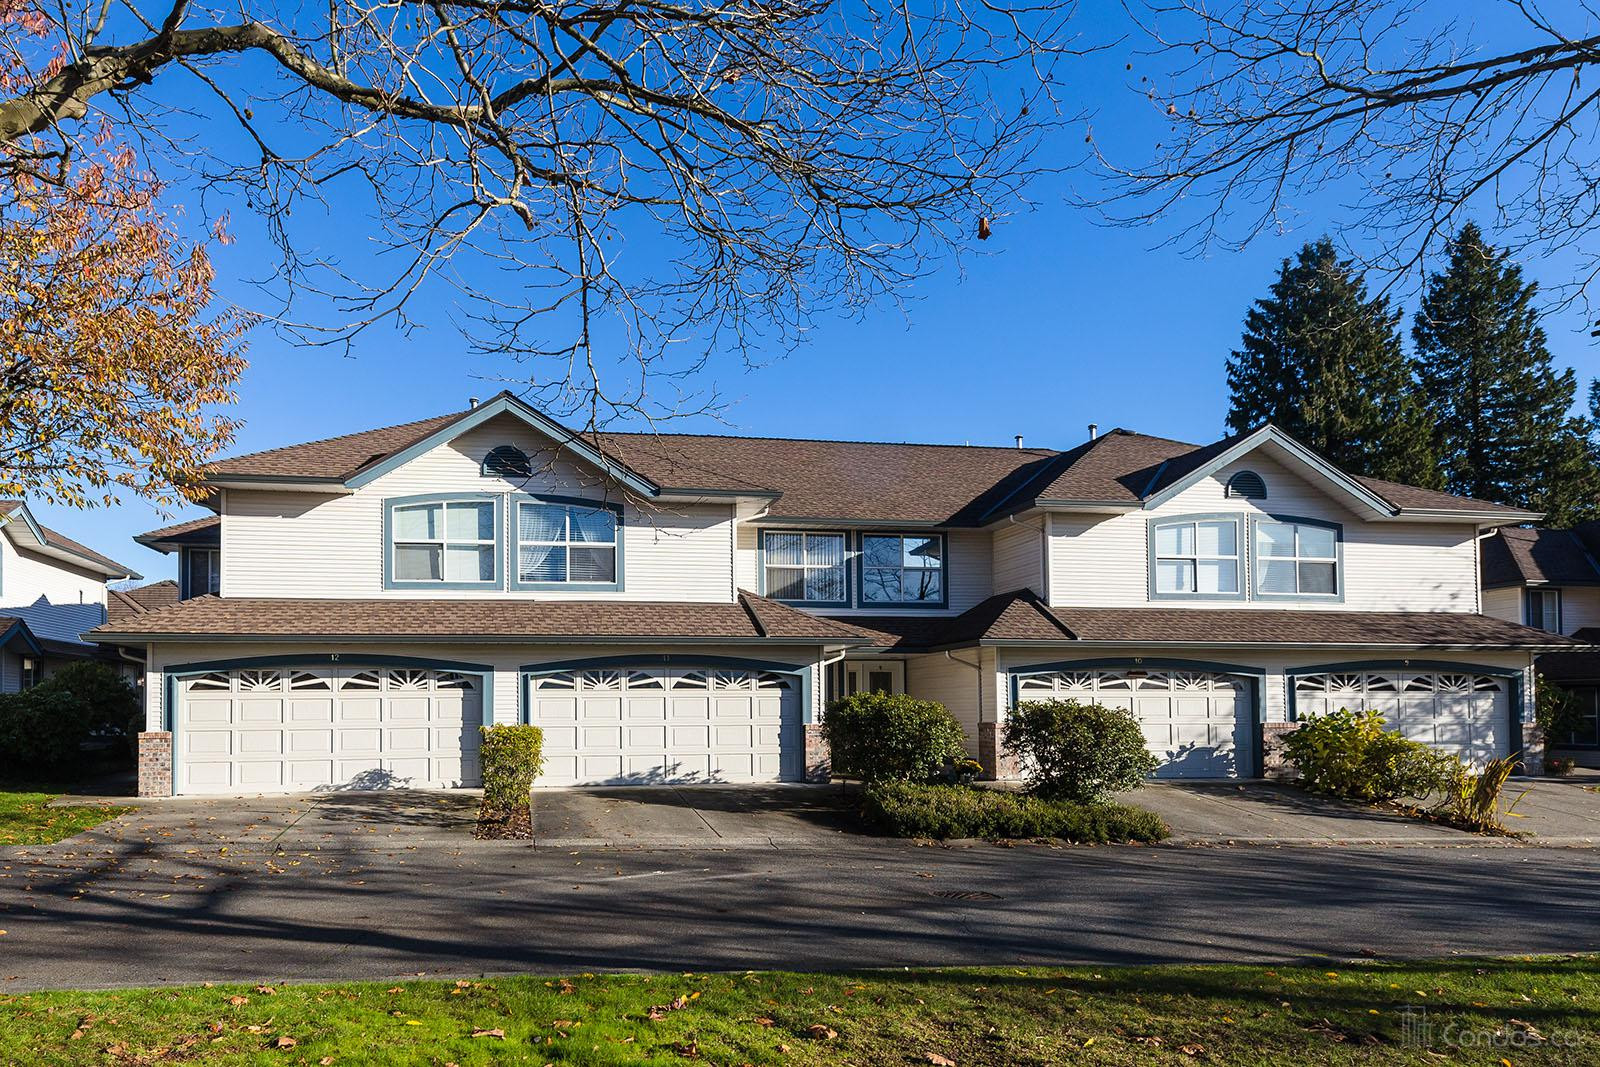 Strawberry Hill at 7250 122 St, Surrey 0